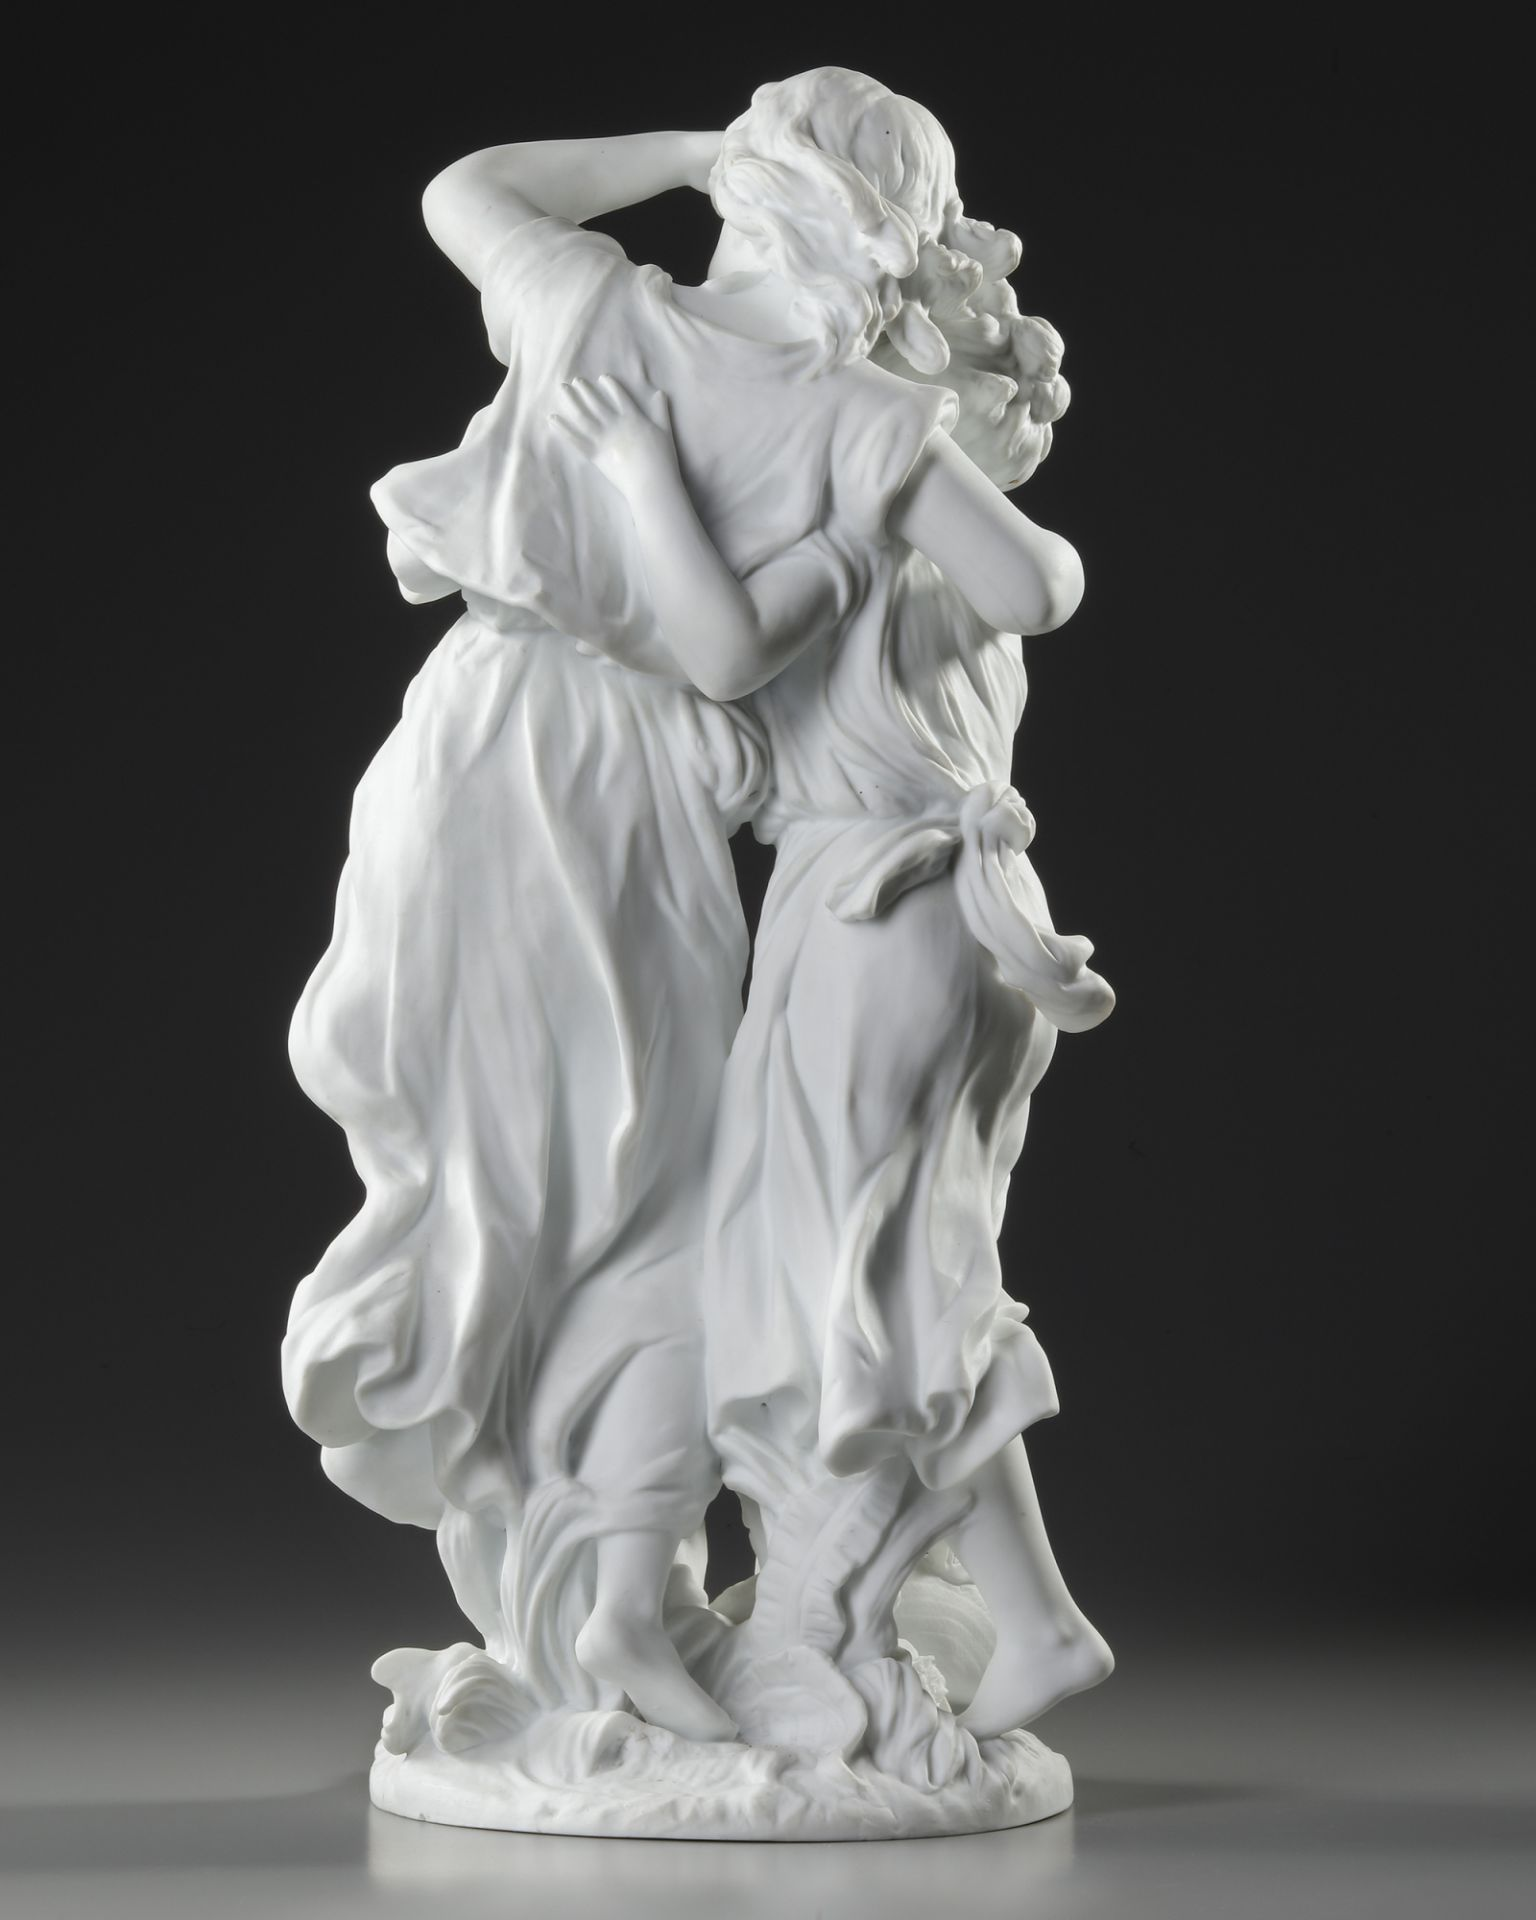 A FRENCH BISCUIT STATUE, SIGNED BY MOREAU (1834-1917) - Image 2 of 5